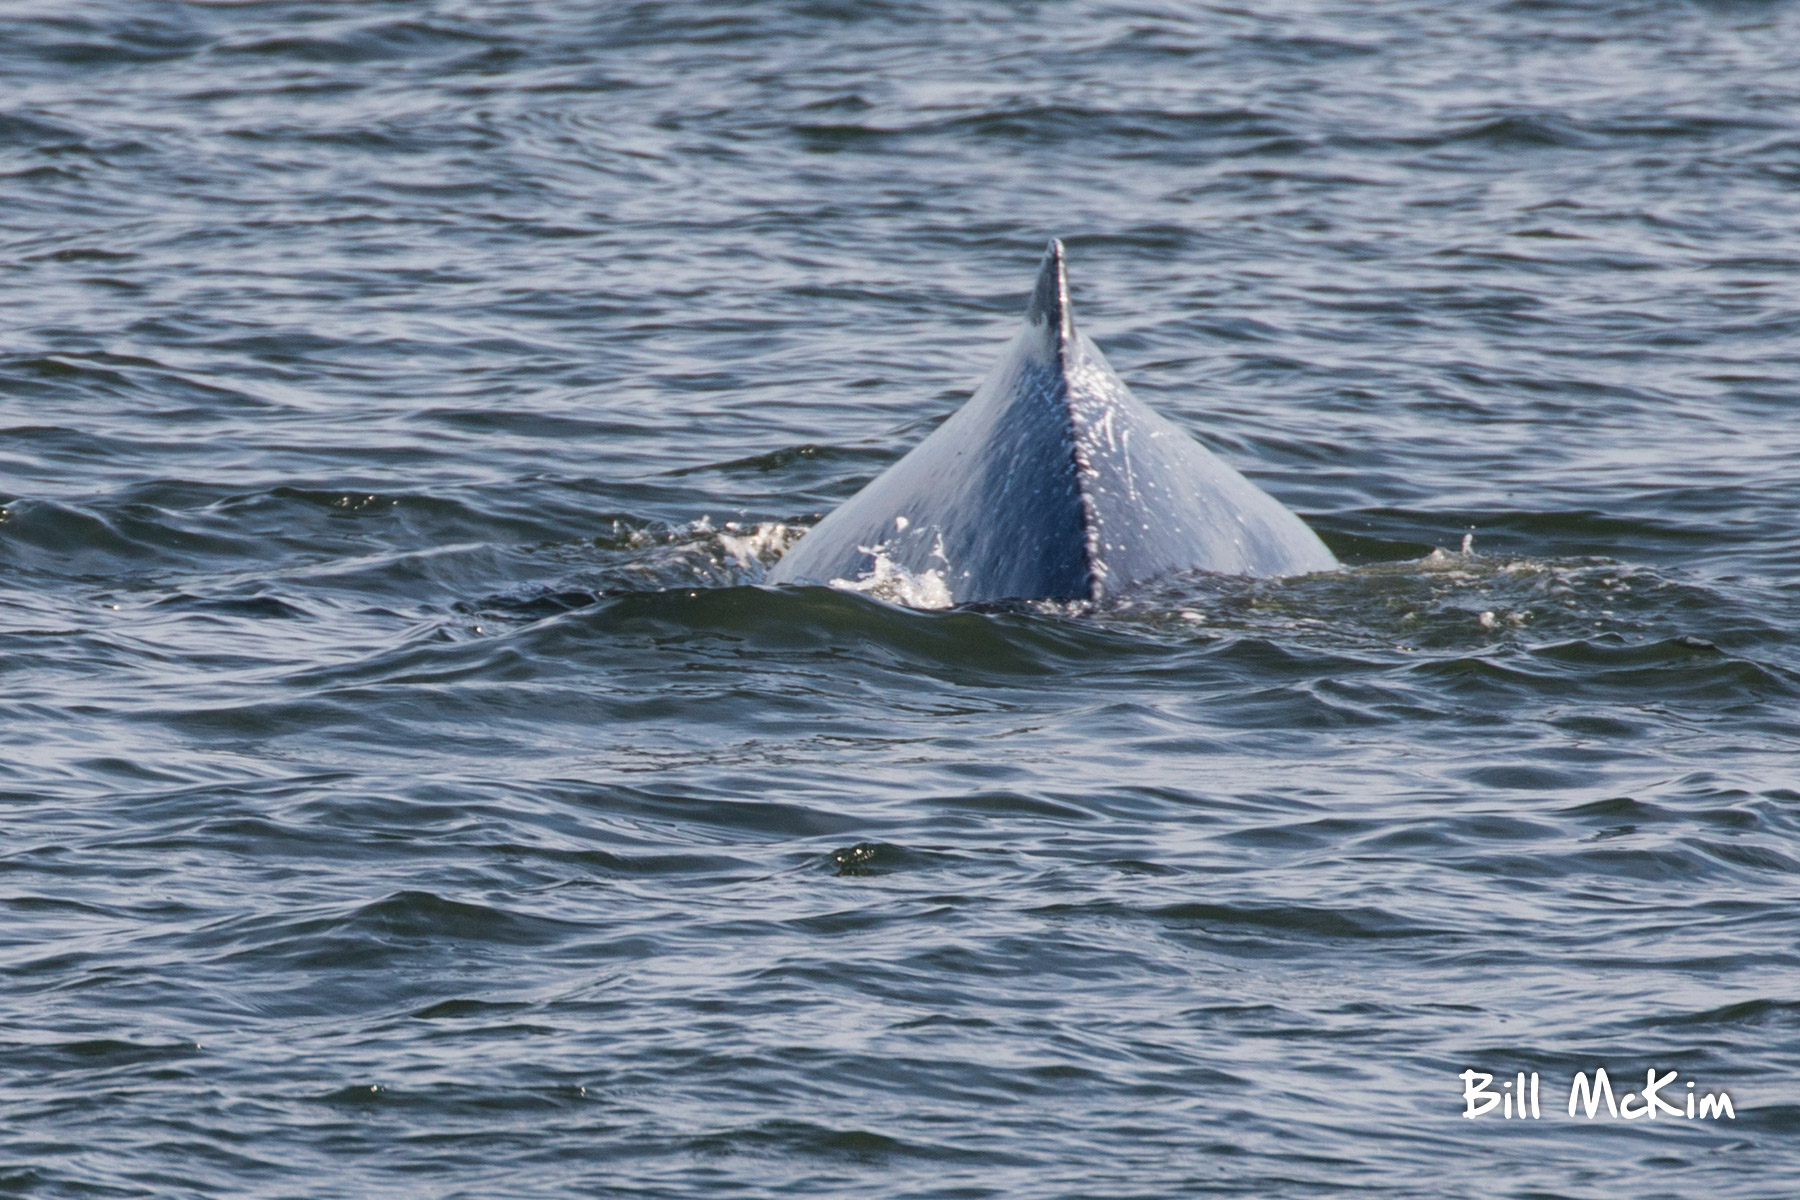 Jersey shore whale watching bill mckim june25th-4771